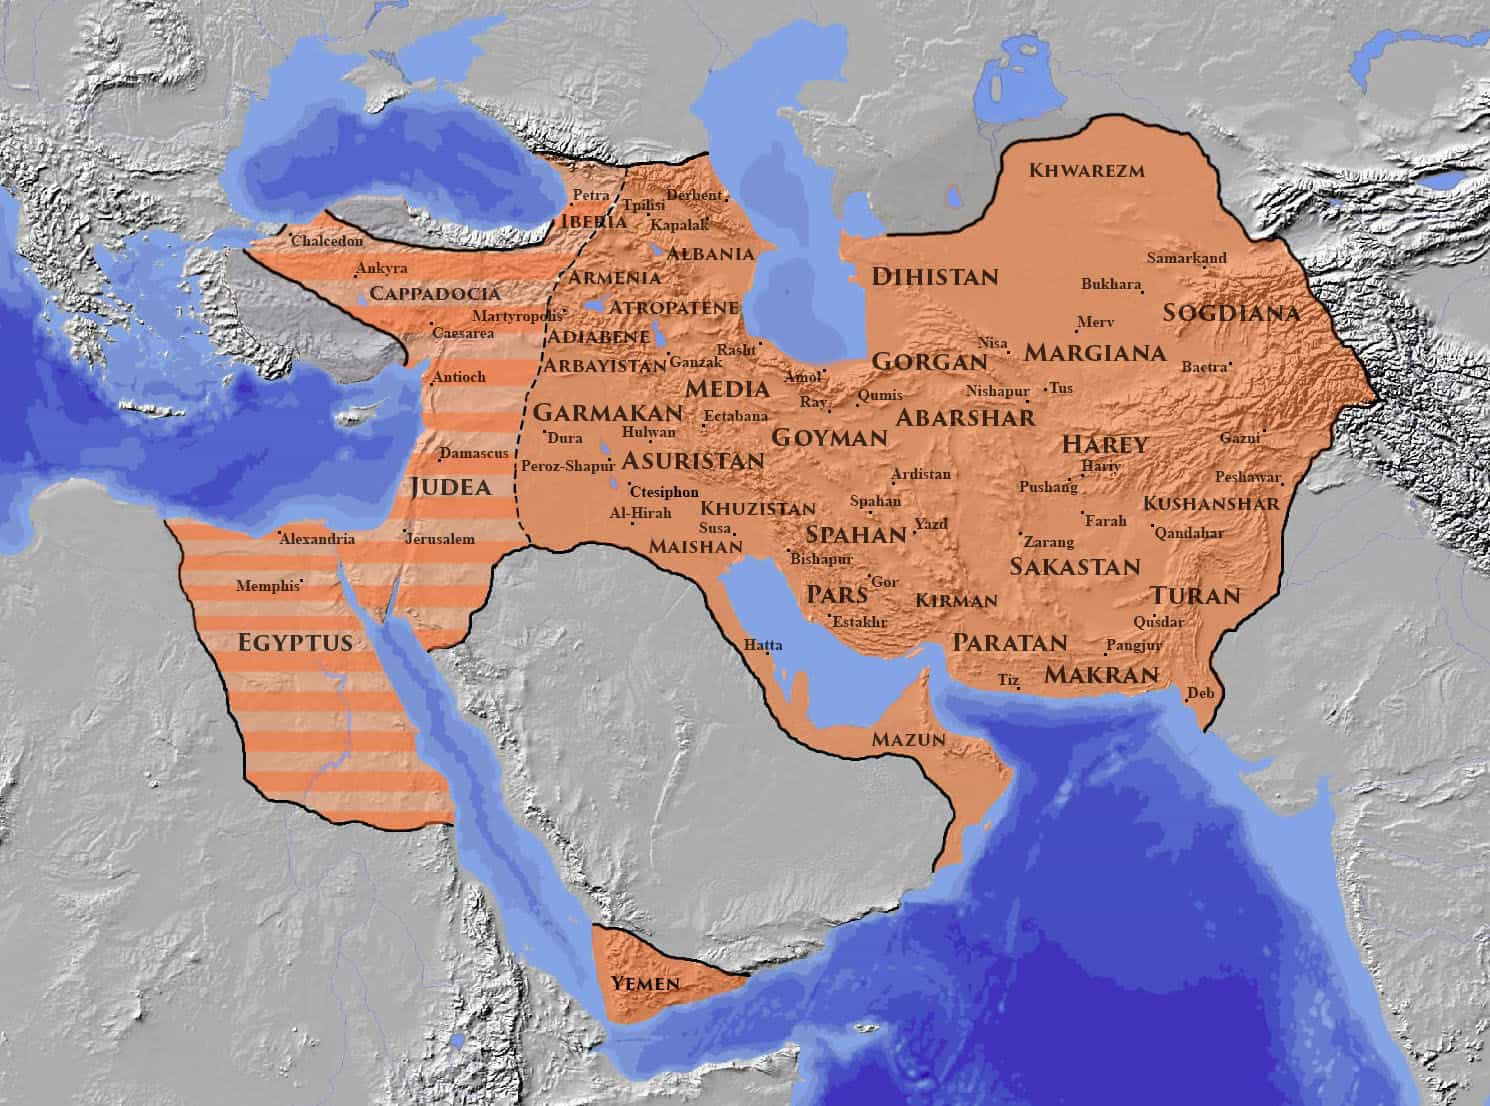 The Sasanian Empire at its greatest extent c. 620, under Khosrow II